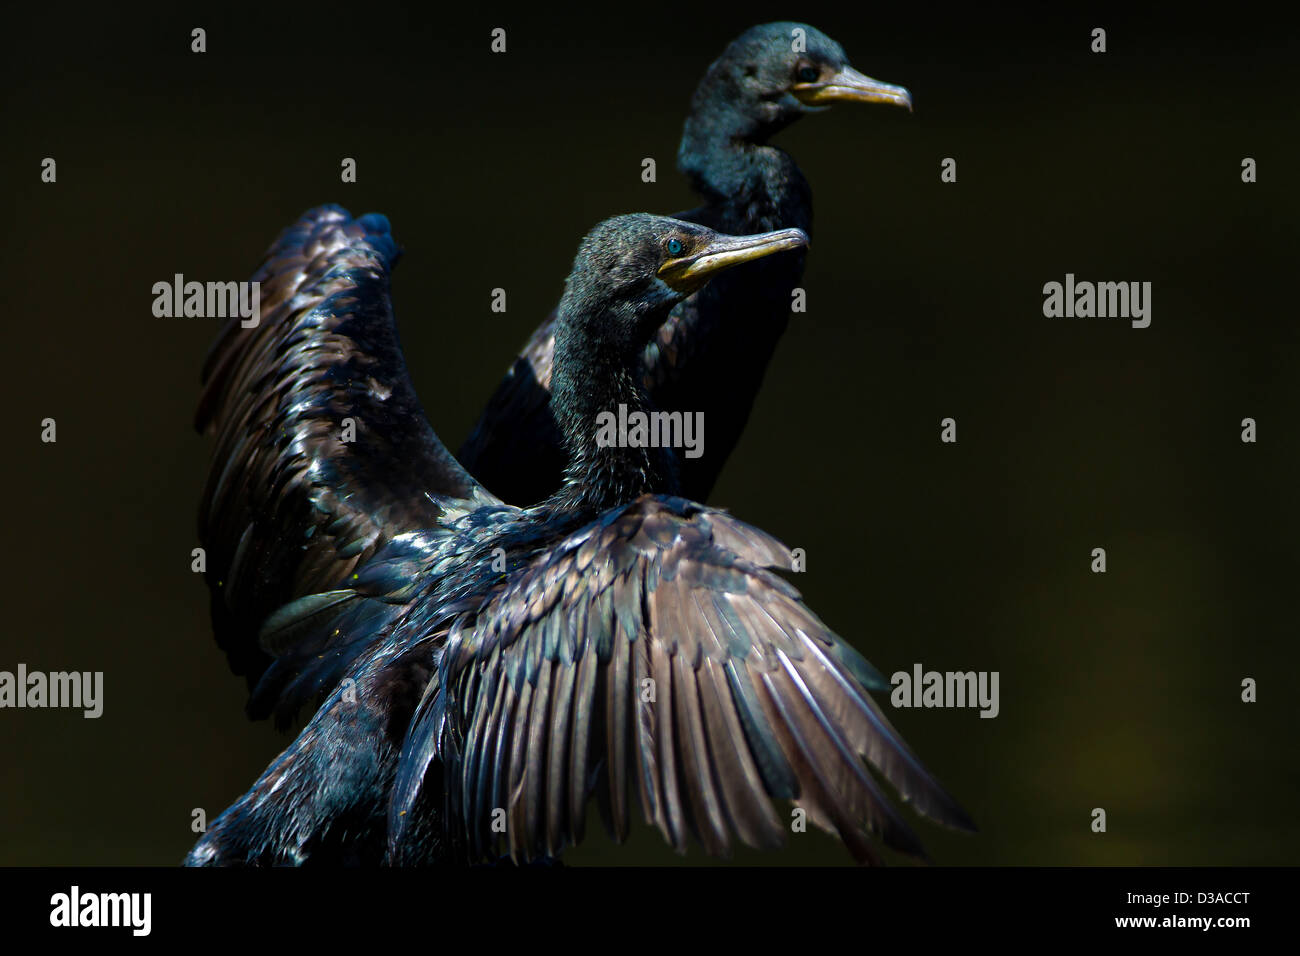 Little cormorant drying its wings - Stock Image